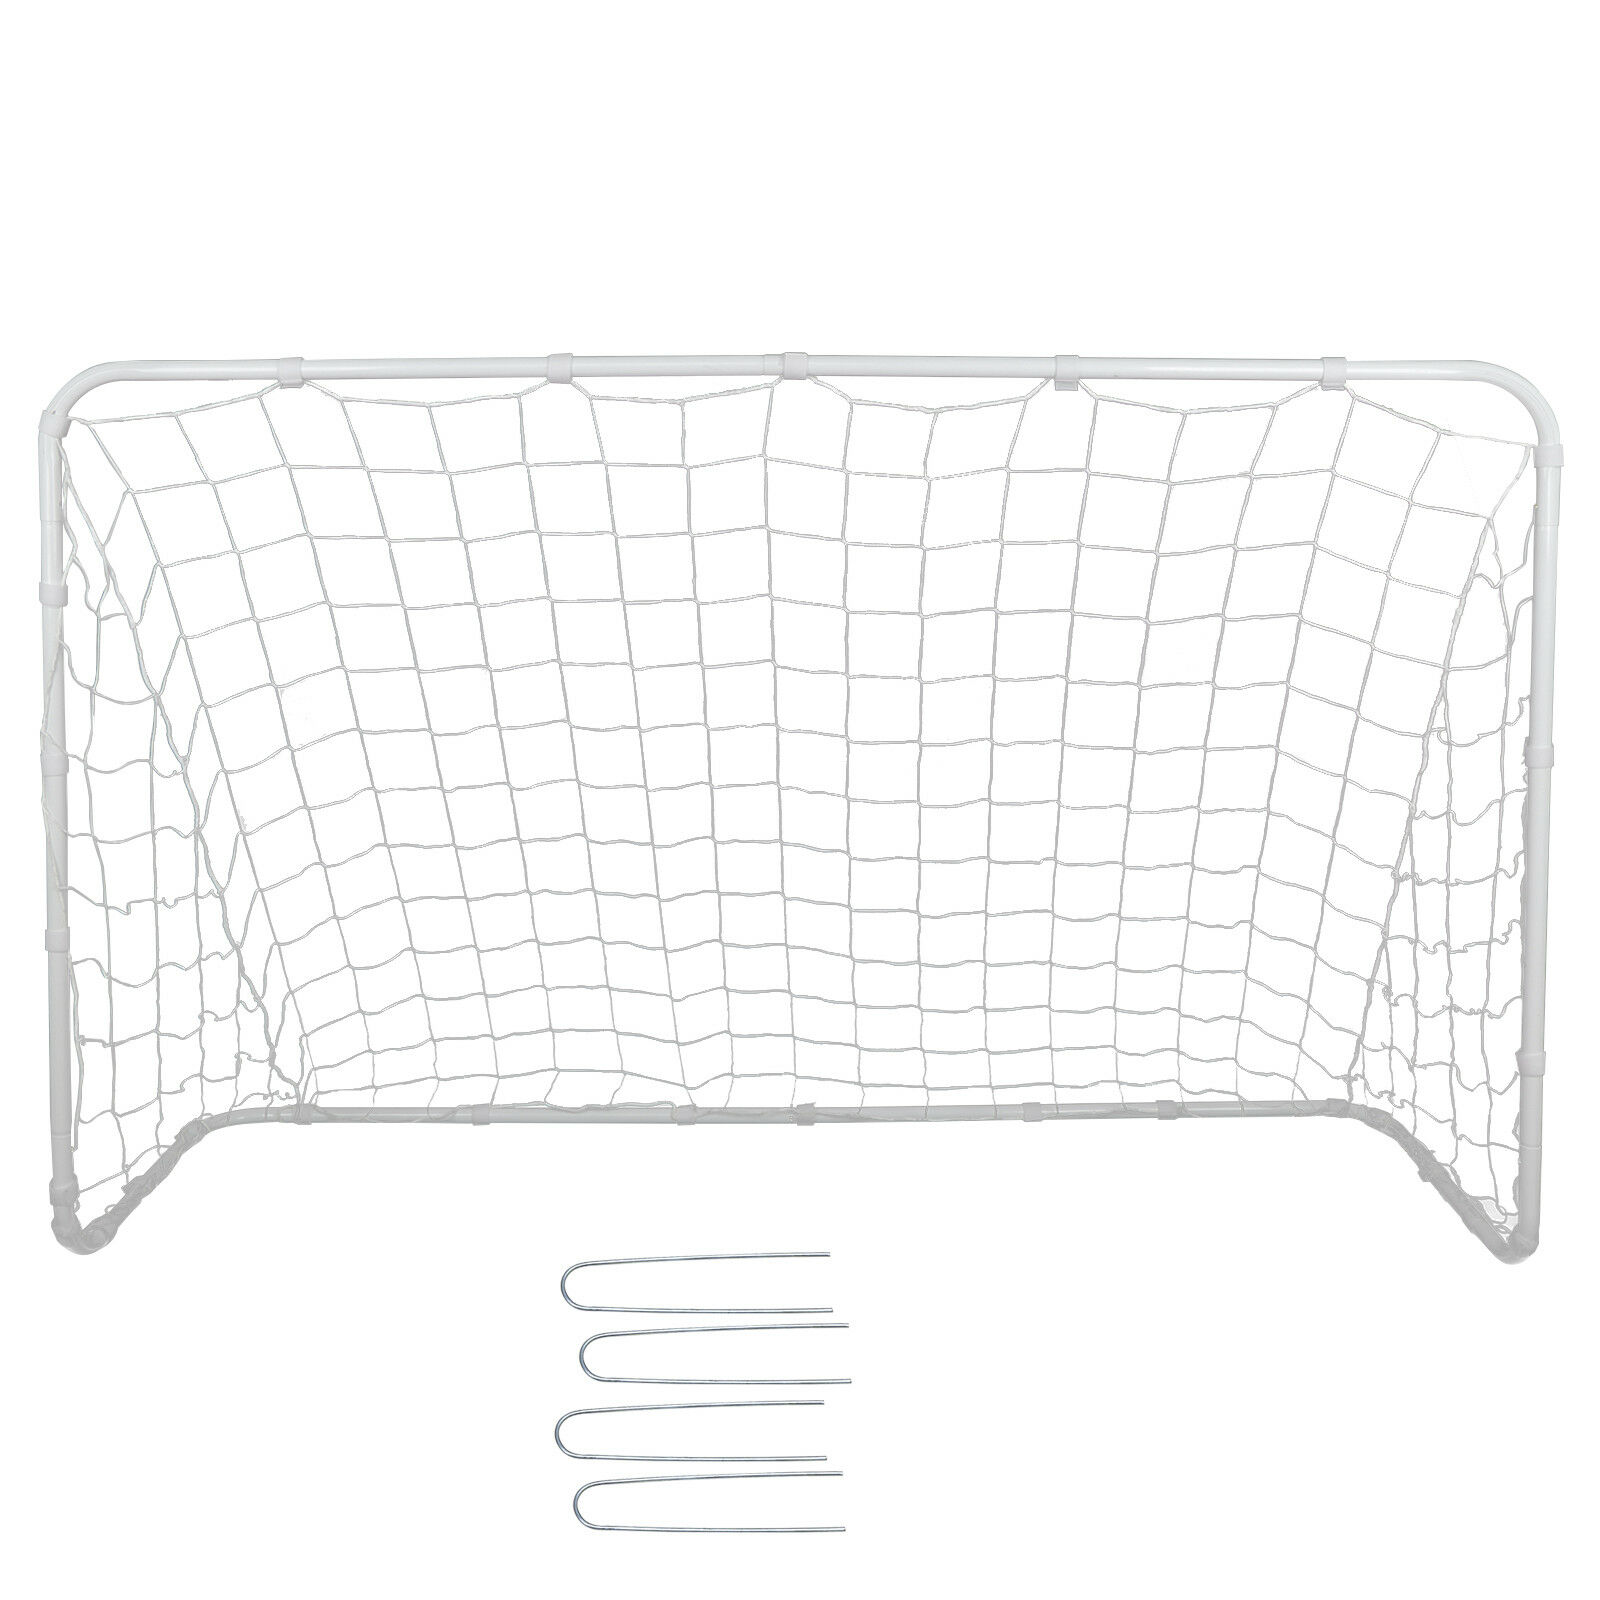 Strong Steel Frame Soccer Goal Football Durable Net 6×4 FT Portable Youth Size Goals & Nets